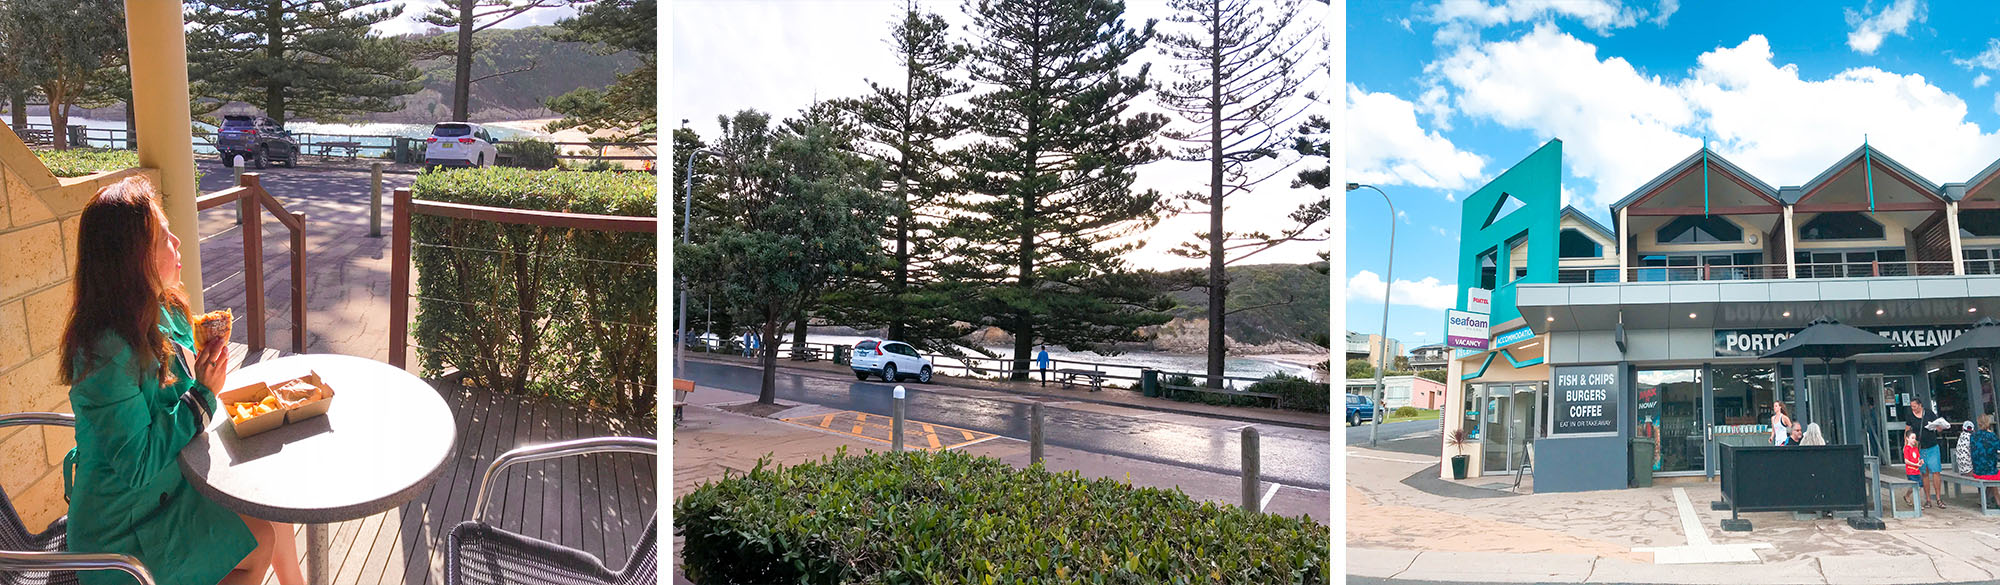 Where to stay in Port Campbell